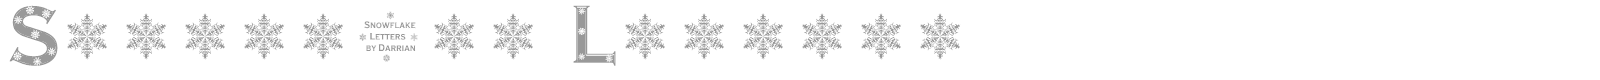 Font Snowflake Letters